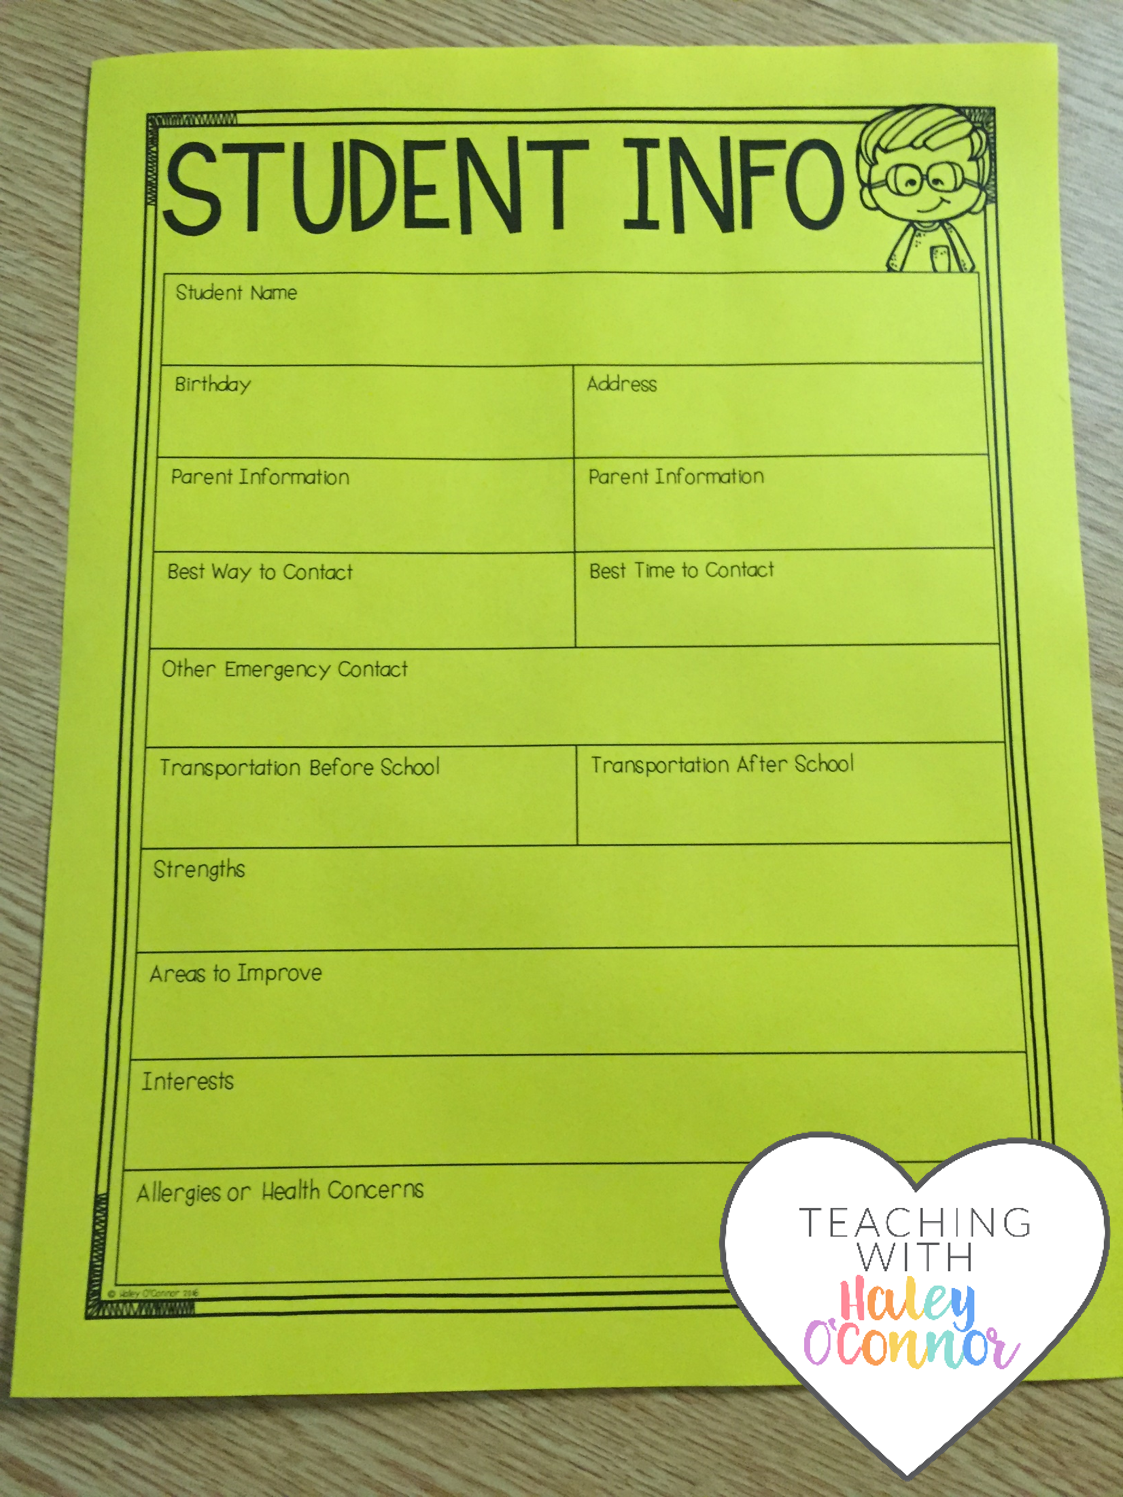 Student Information Sheet for Teachers by Haley O'Connor